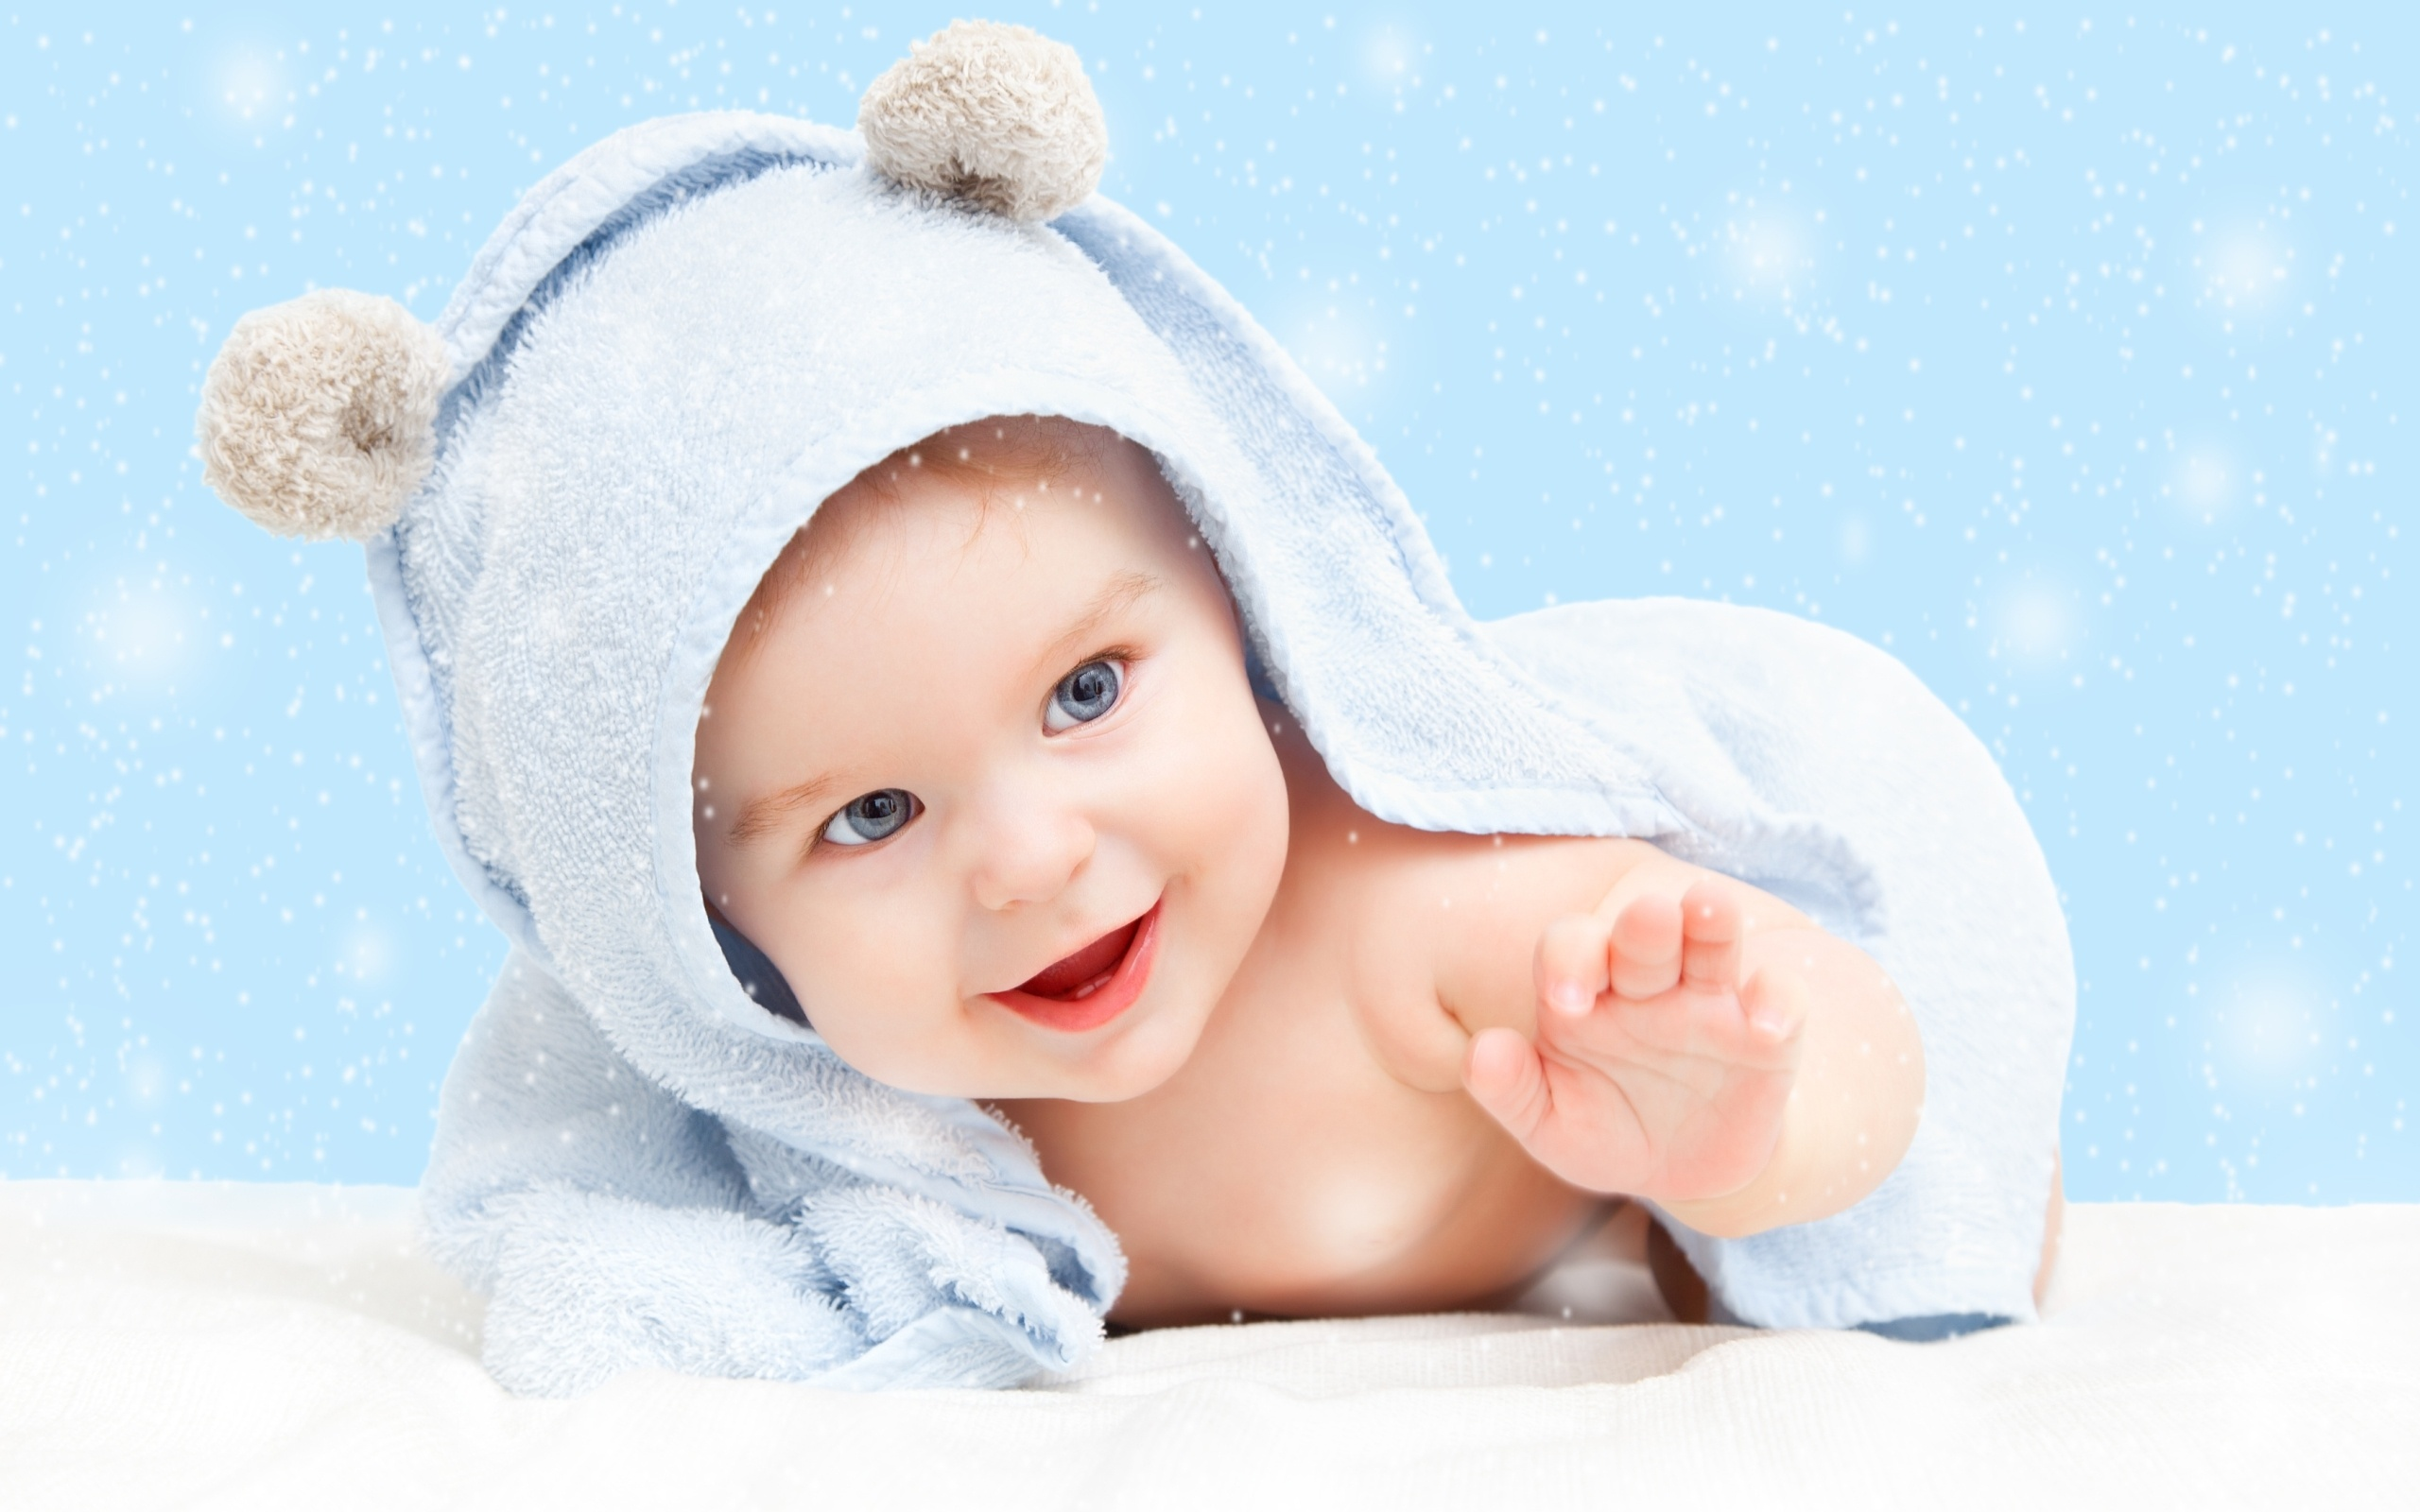 Widescreen Wallpapers of Cute Baby » Nice Pics